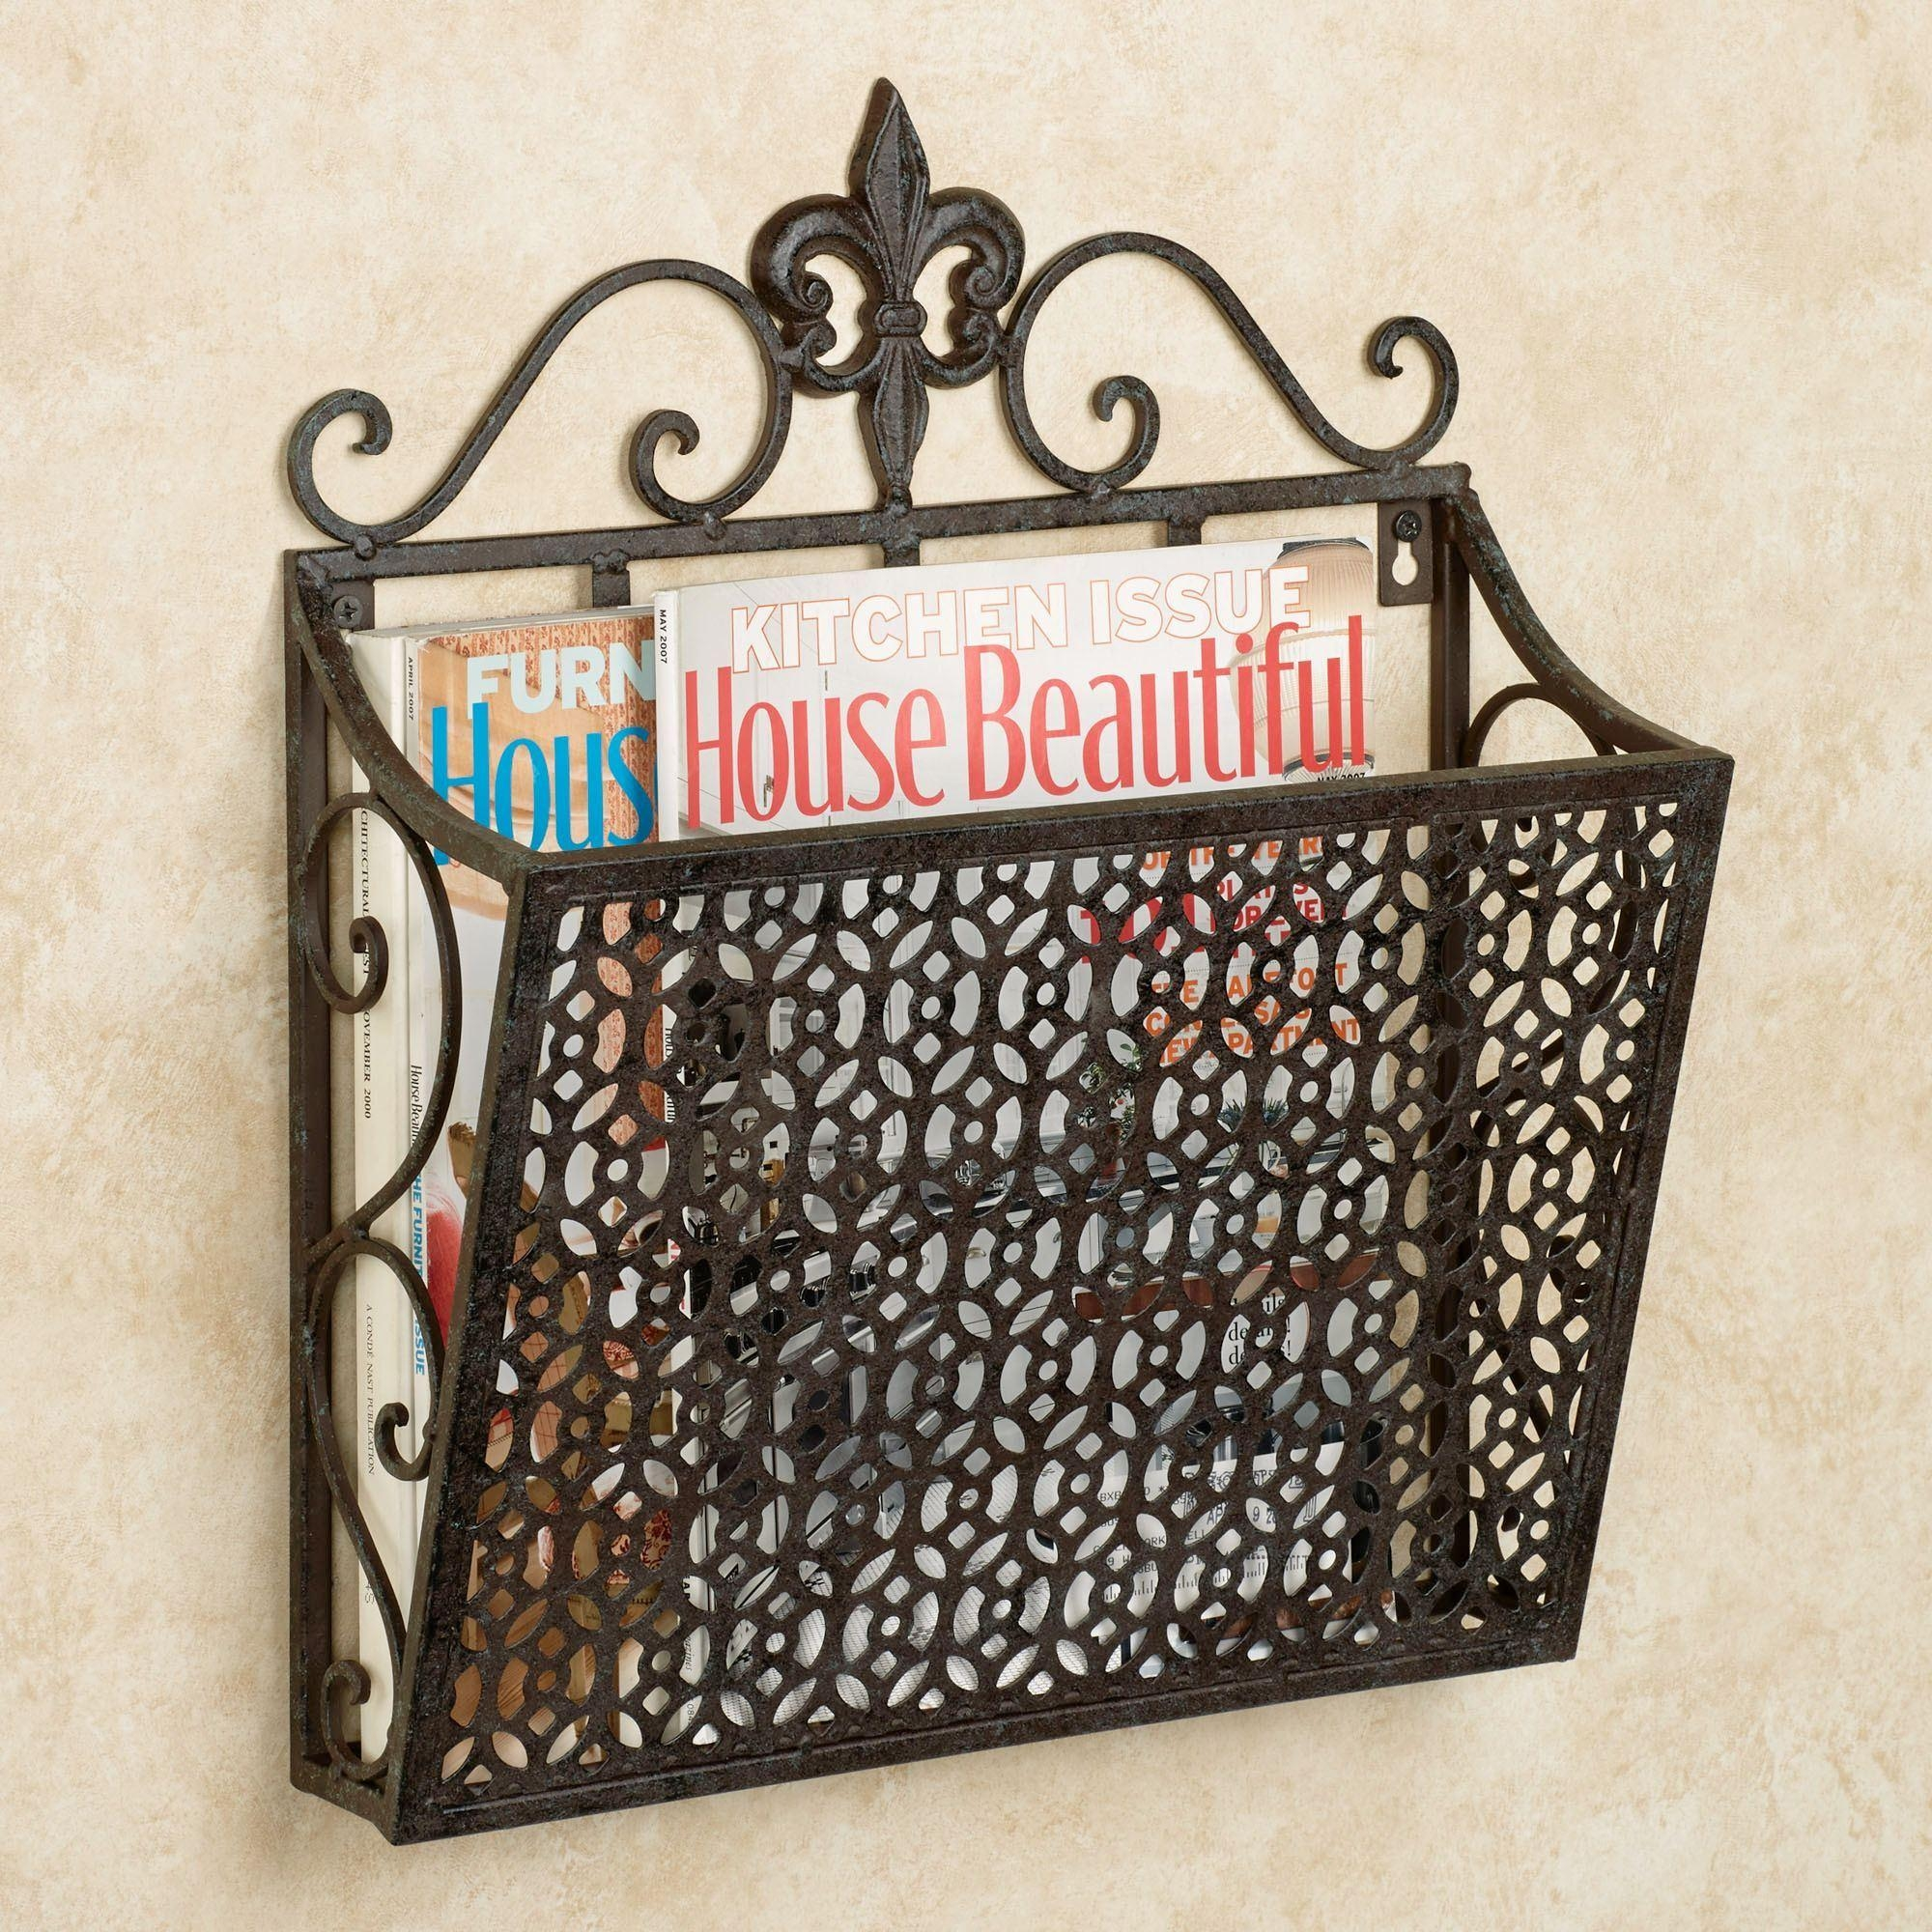 Fleur De Lis Metal Wall Magazine Rack For Fleur De Lis Metal Wall Art (Image 4 of 20)